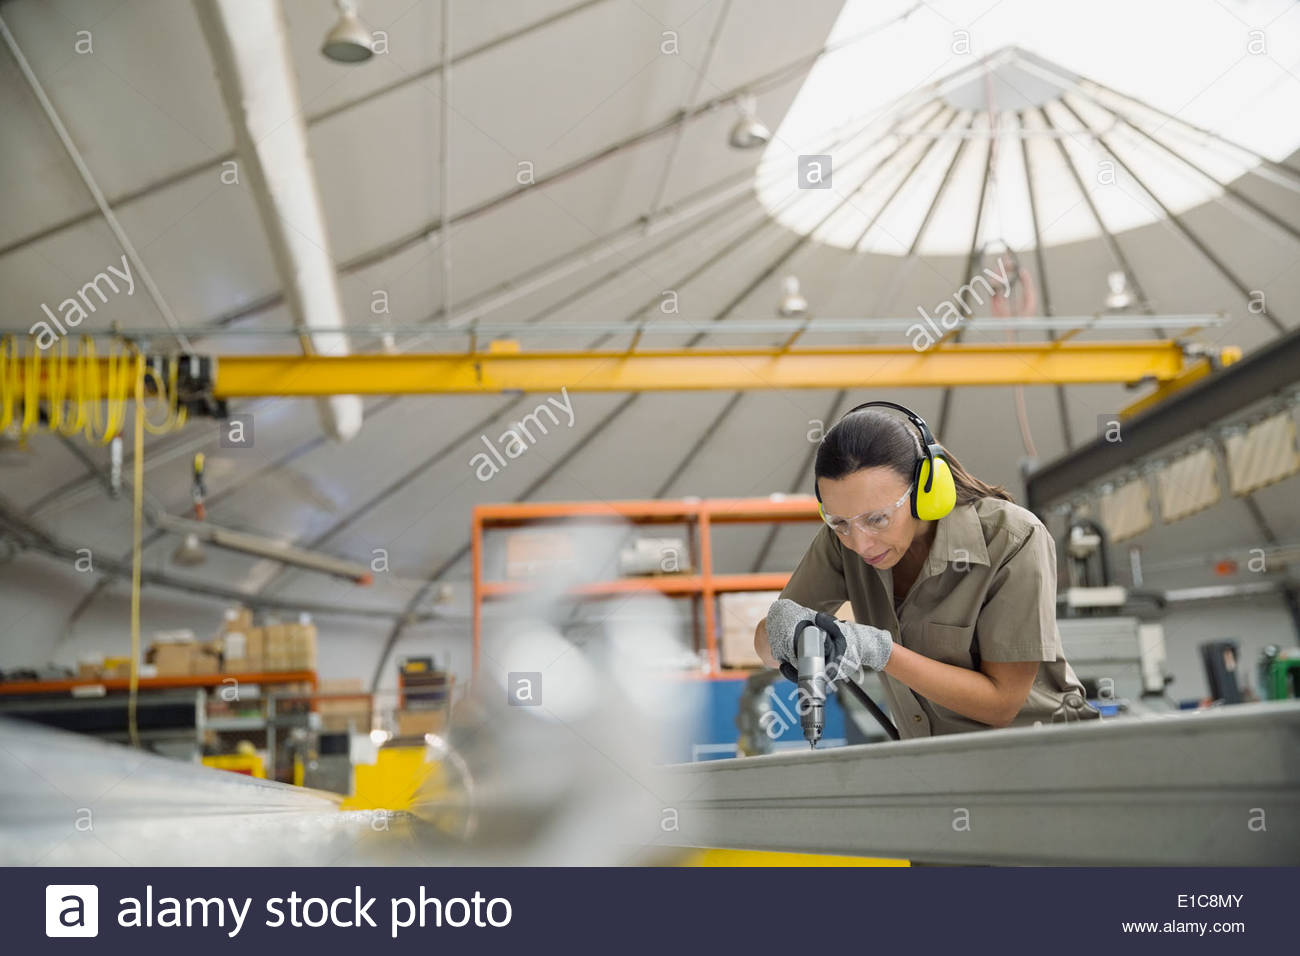 Worker drilling into metal in manufacturing plant - Stock Image